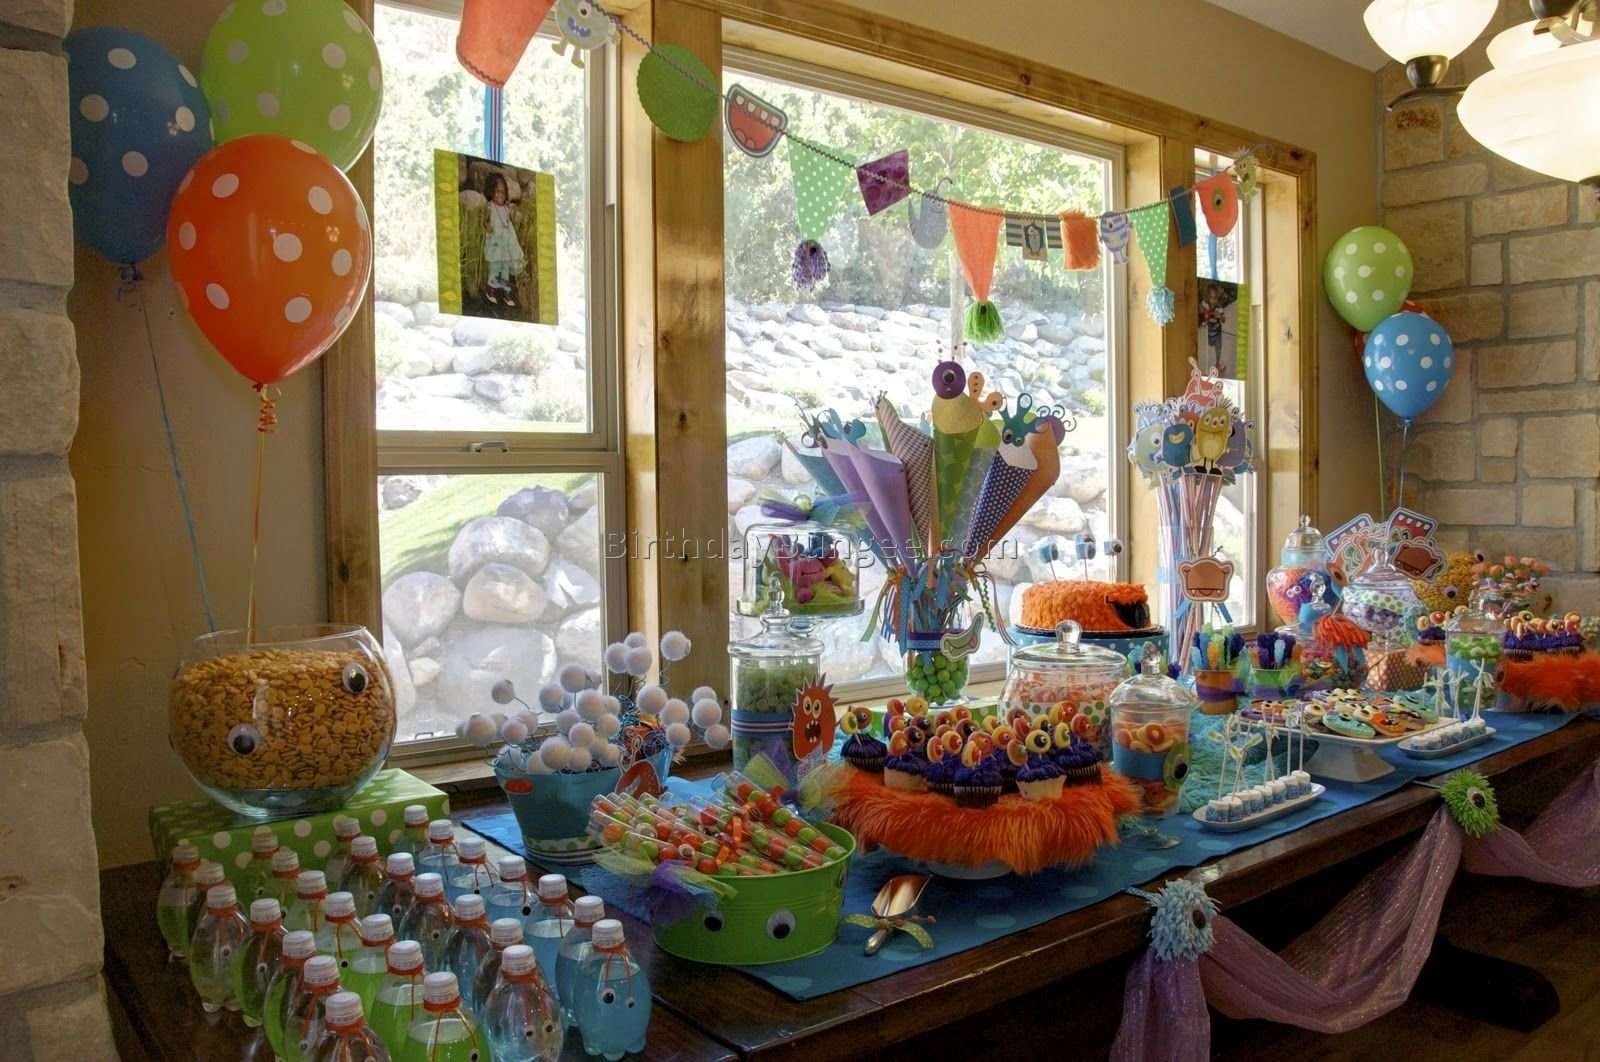 10 Great Birthday Party Ideas For 4 Year Old Themes 6 Boy